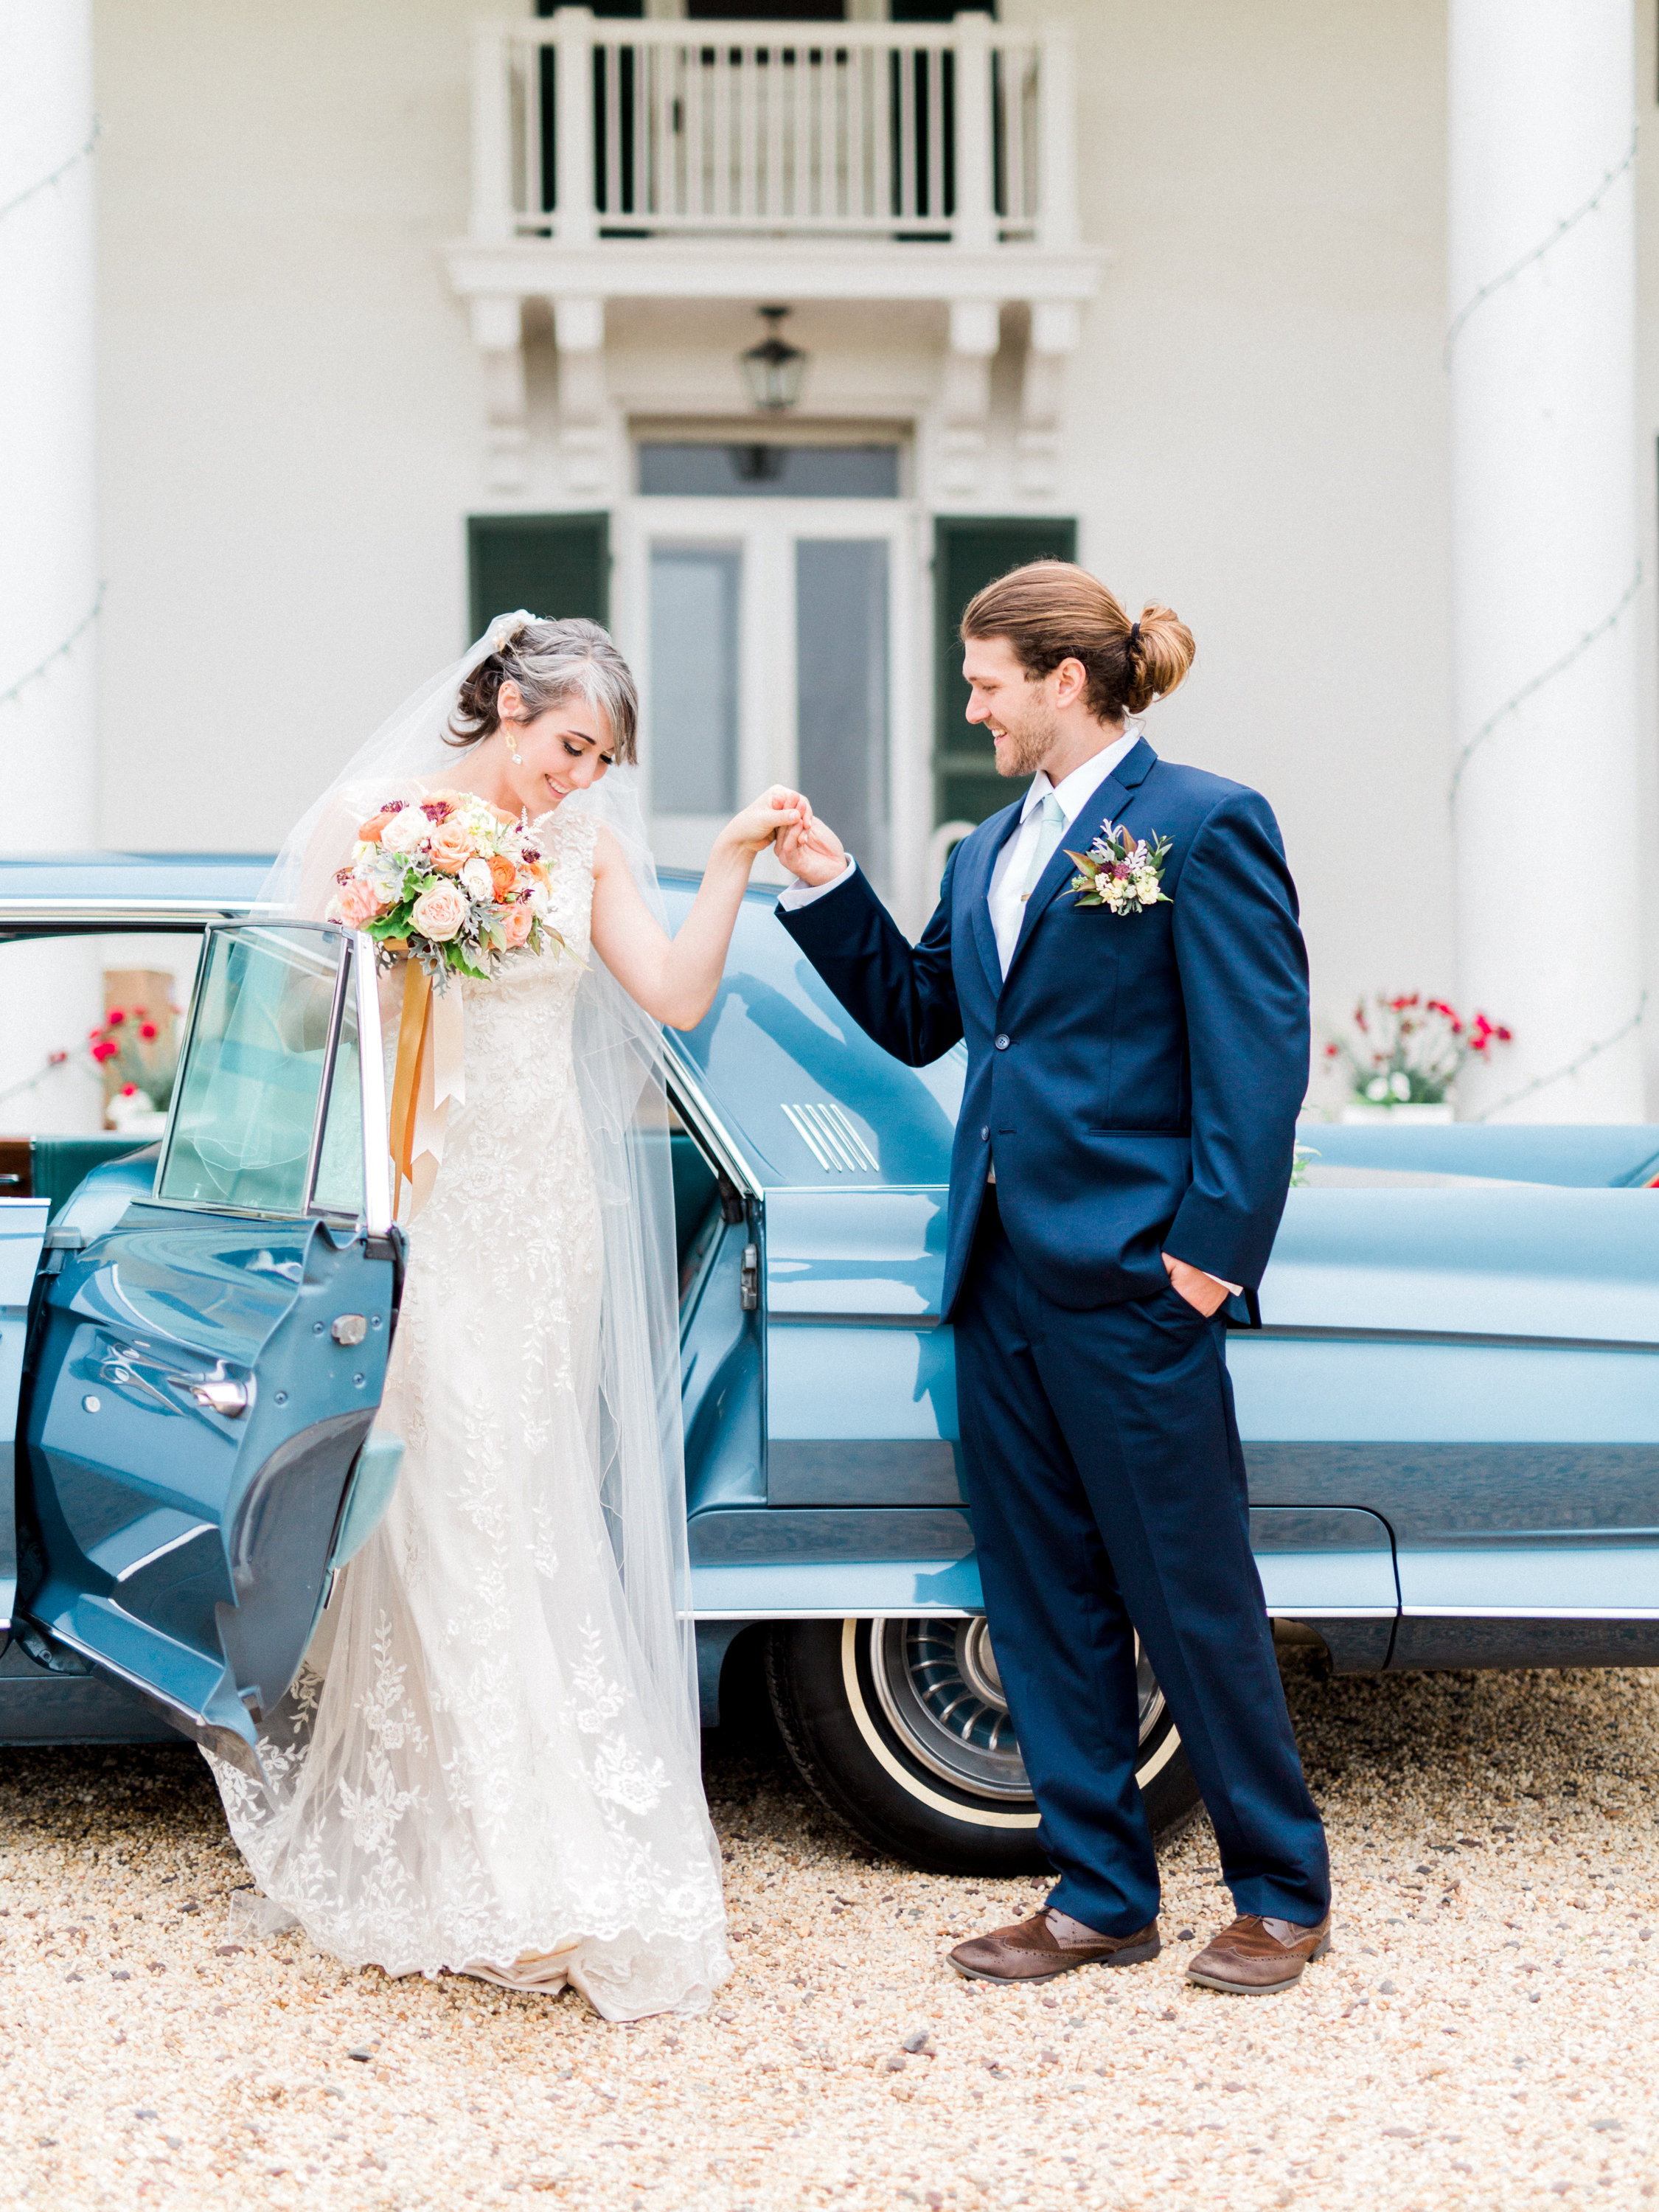 Wedding Arrival in Classic Car